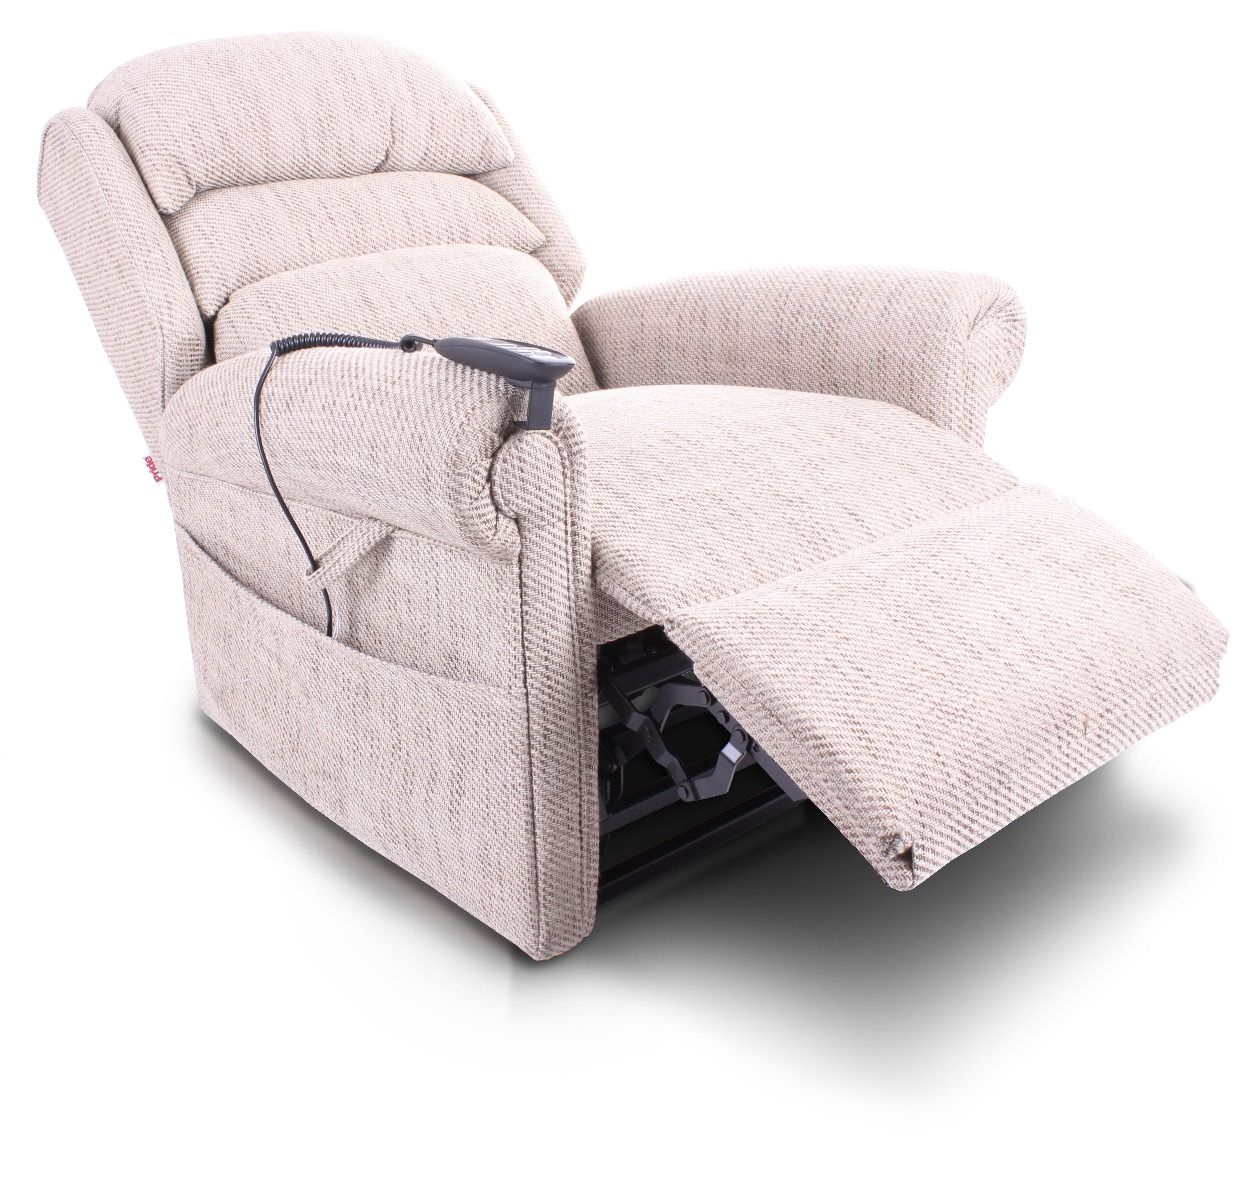 Sleep Recliner Chair Pride Sussex Fabric Riser Recliner